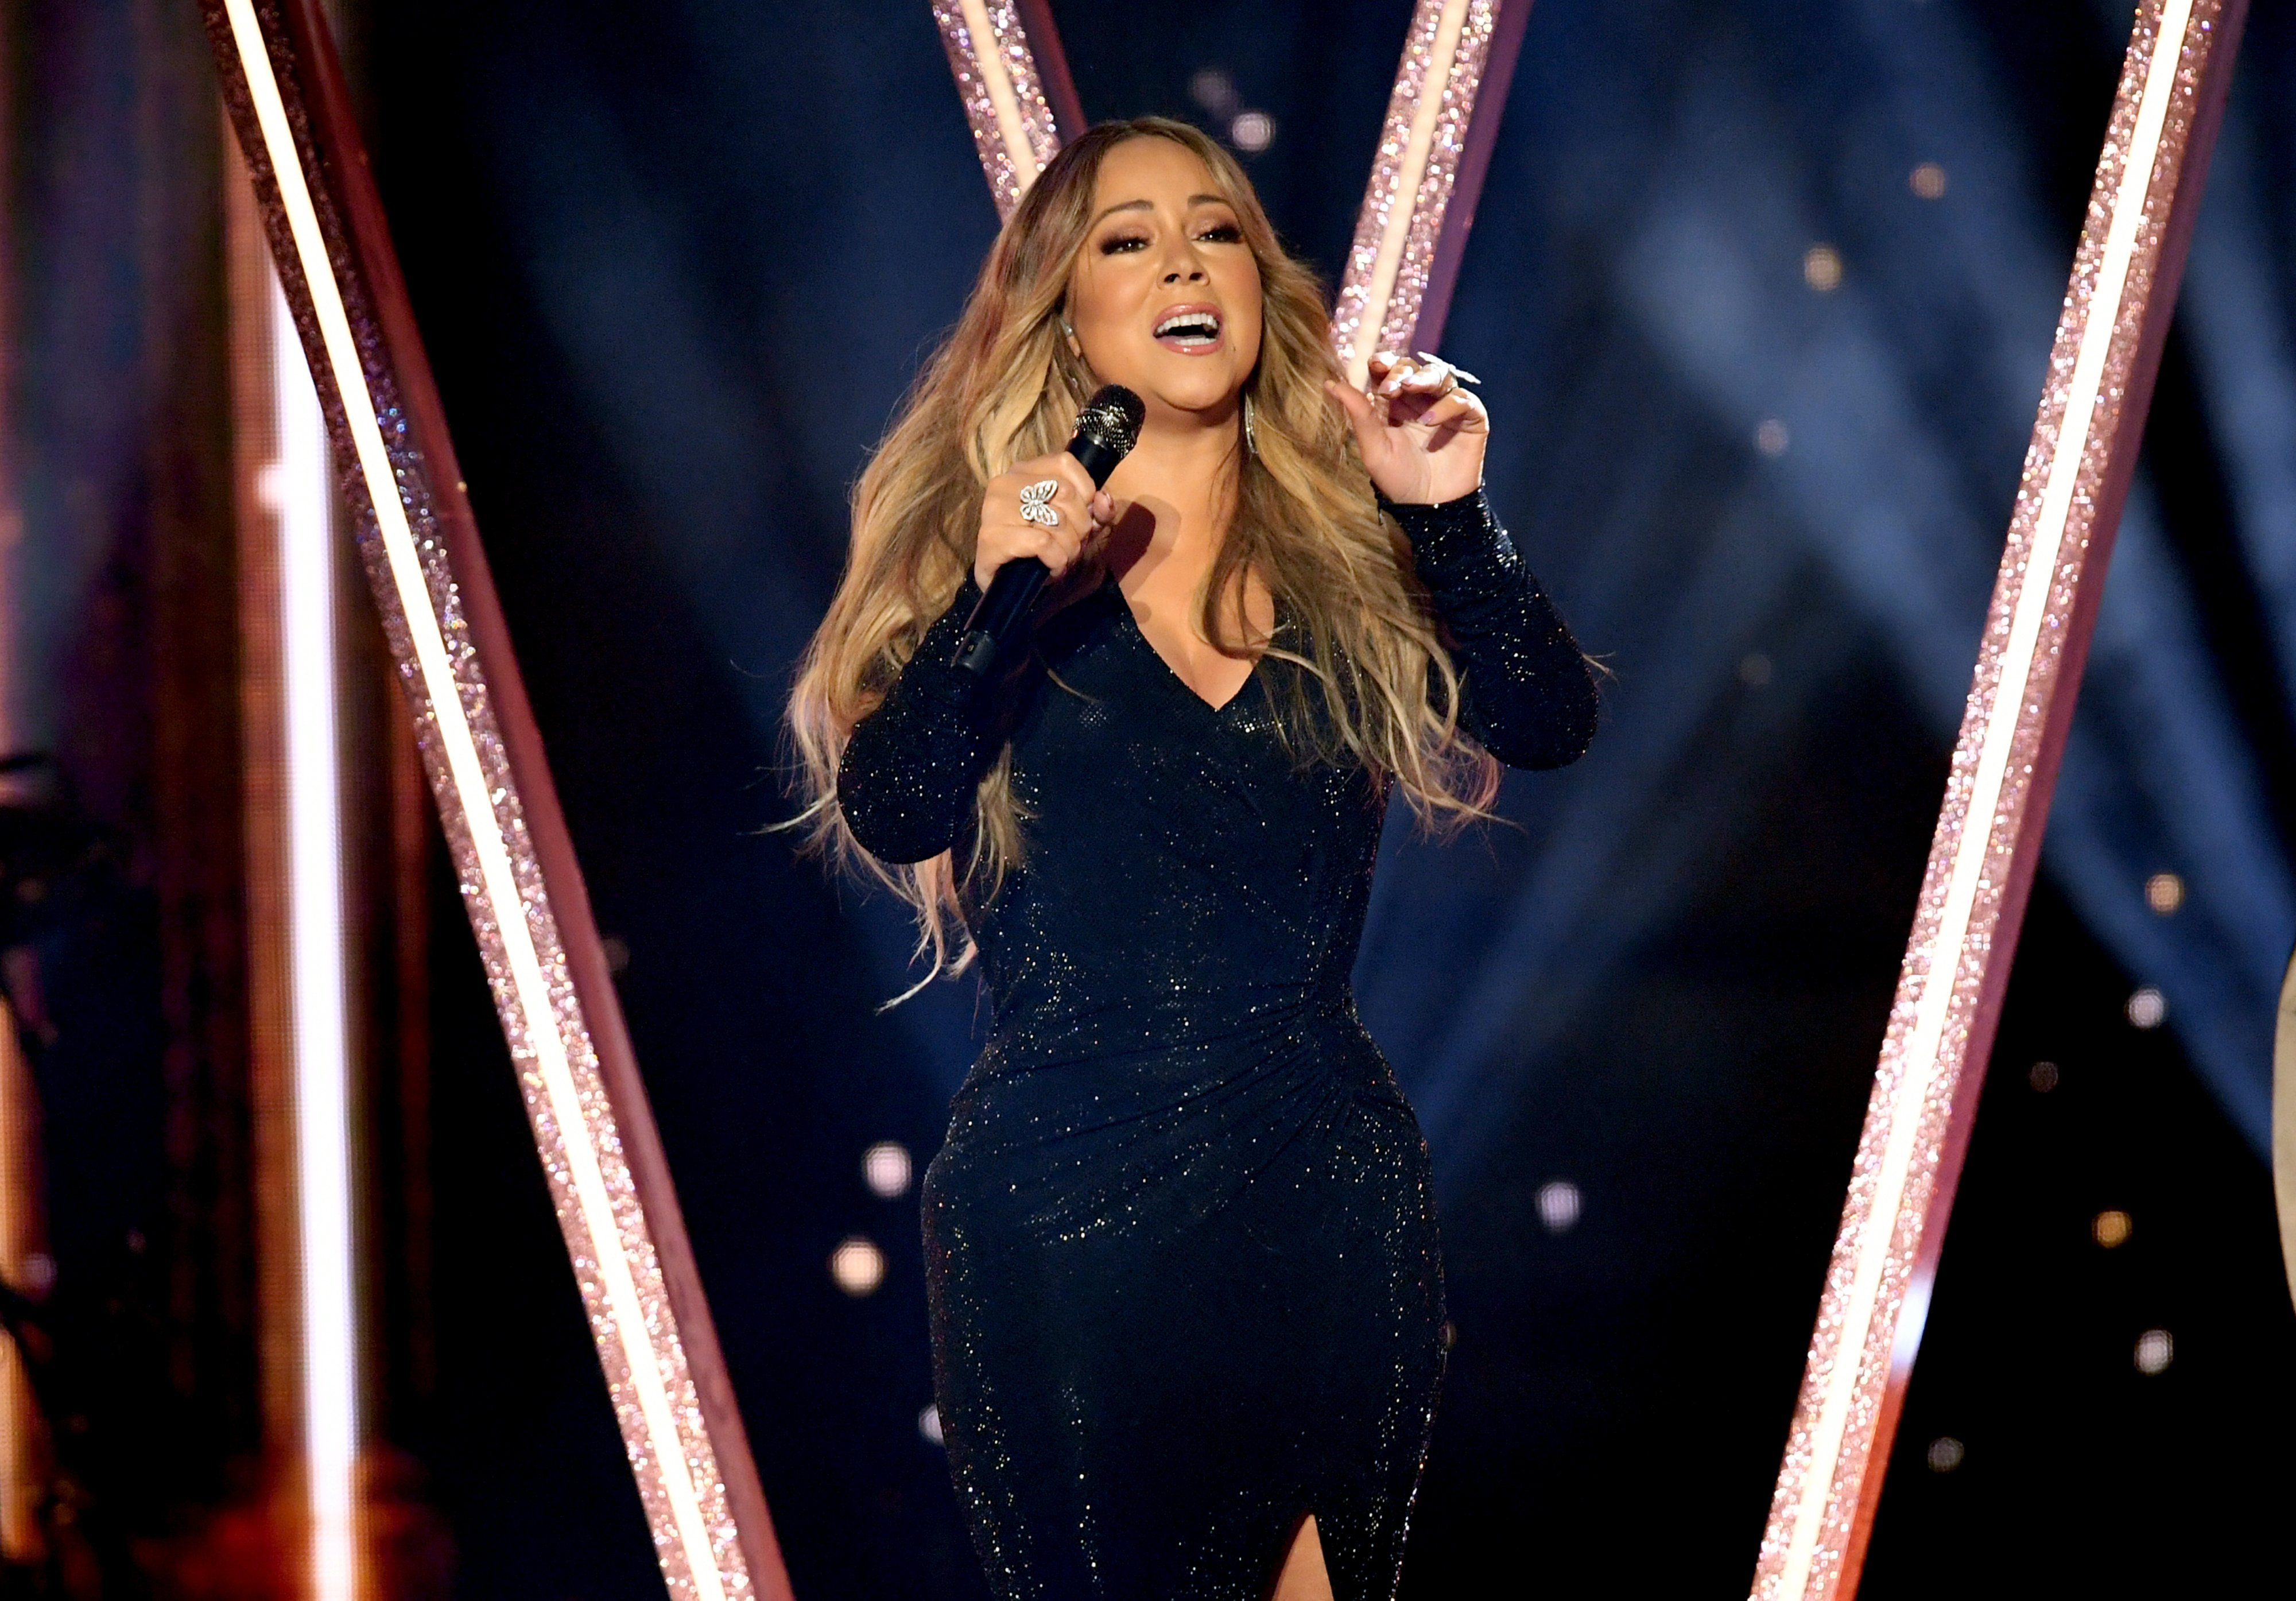 Mariah Carey performs during the Billboard Music Awards on May 01, 2019 in Nevada | Photo: Getty Images